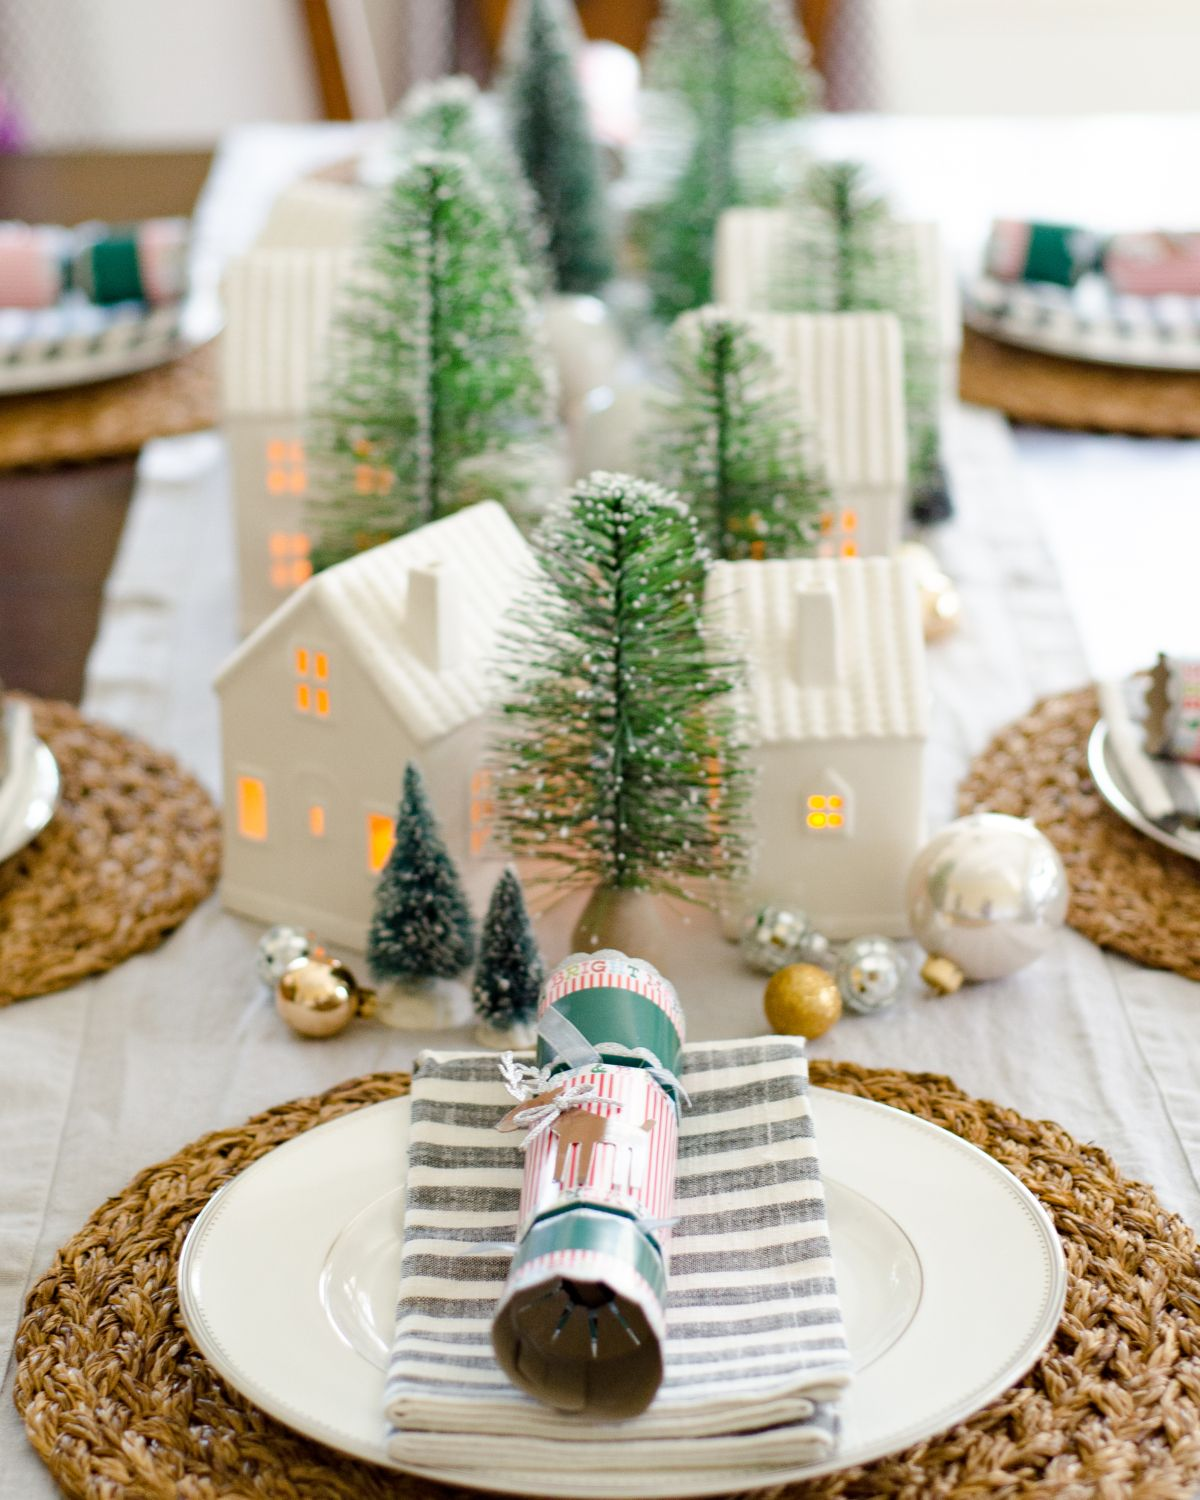 Image Result For Bottle Brush Trees Decor Table Christmas Centerpieces Christmas Dining Room Christmas Dining Table